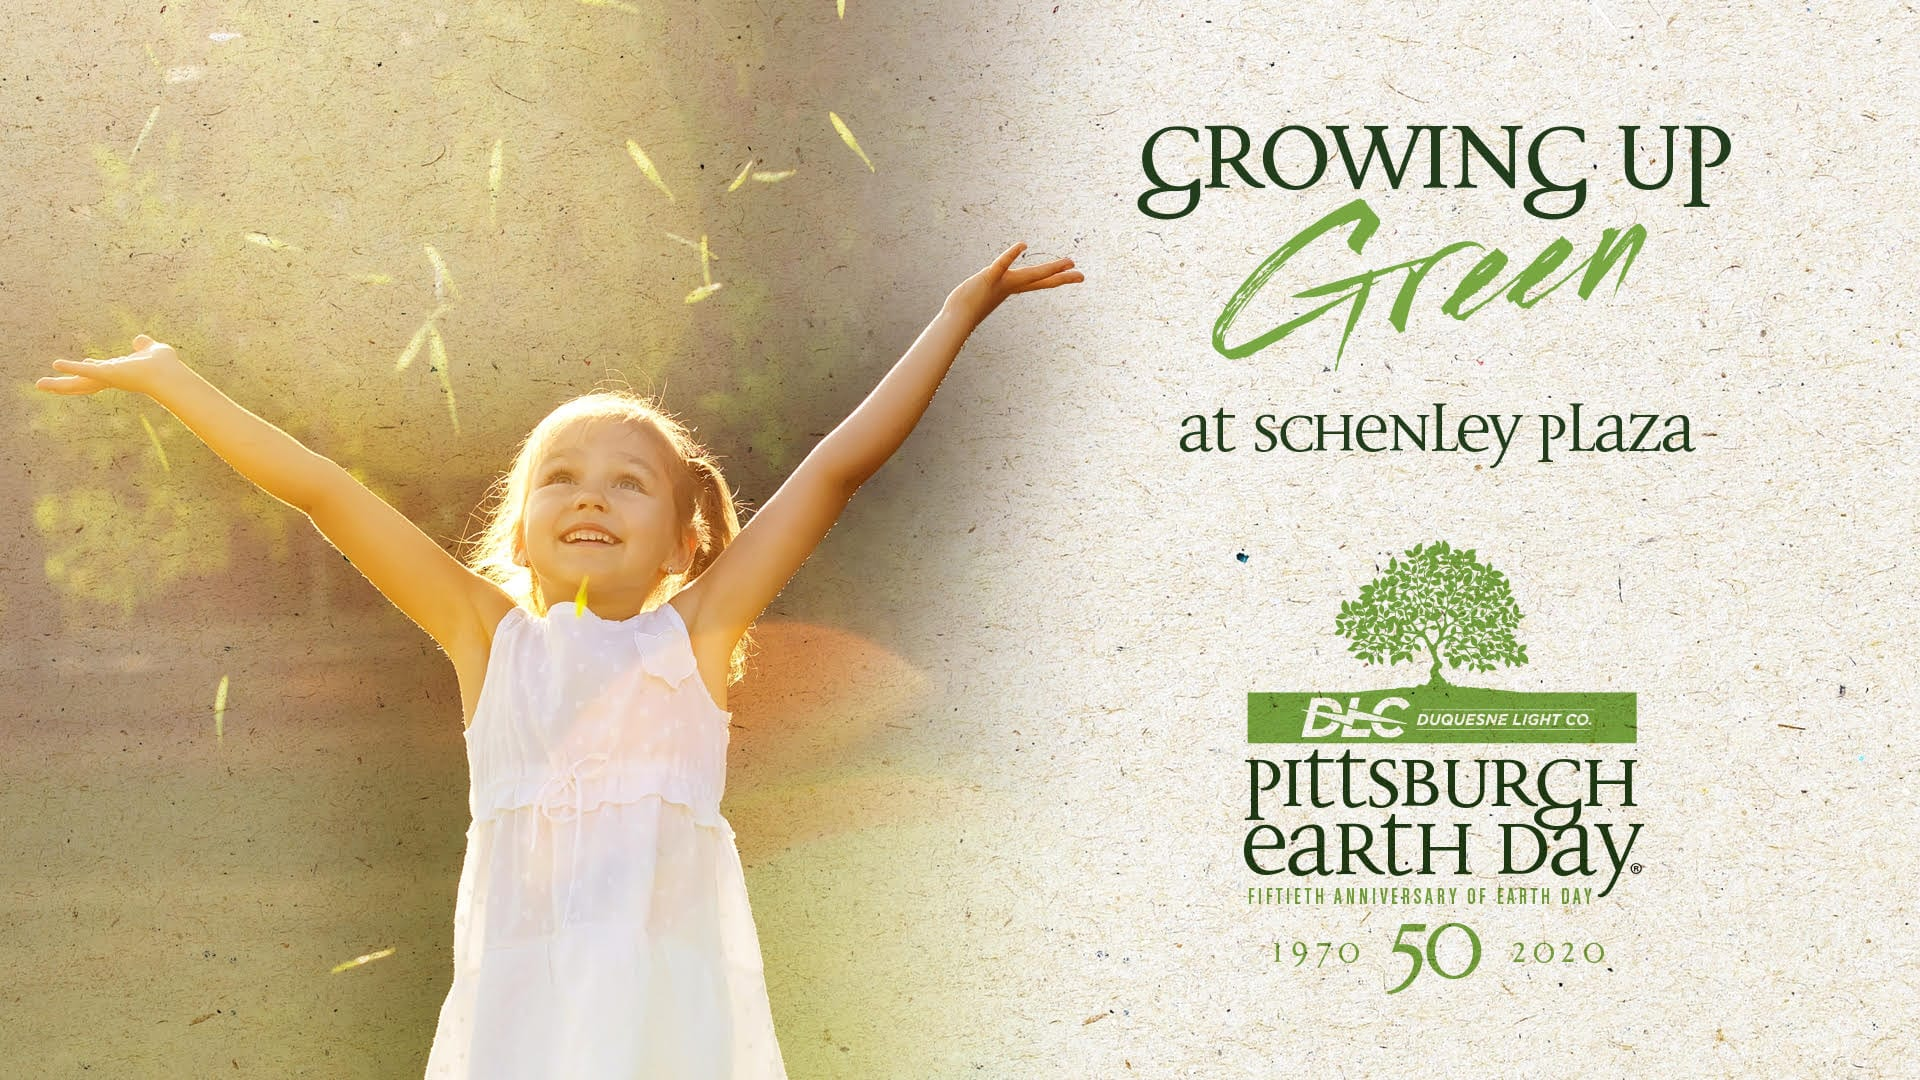 Growing Up Green Festival at Schenley Plaza